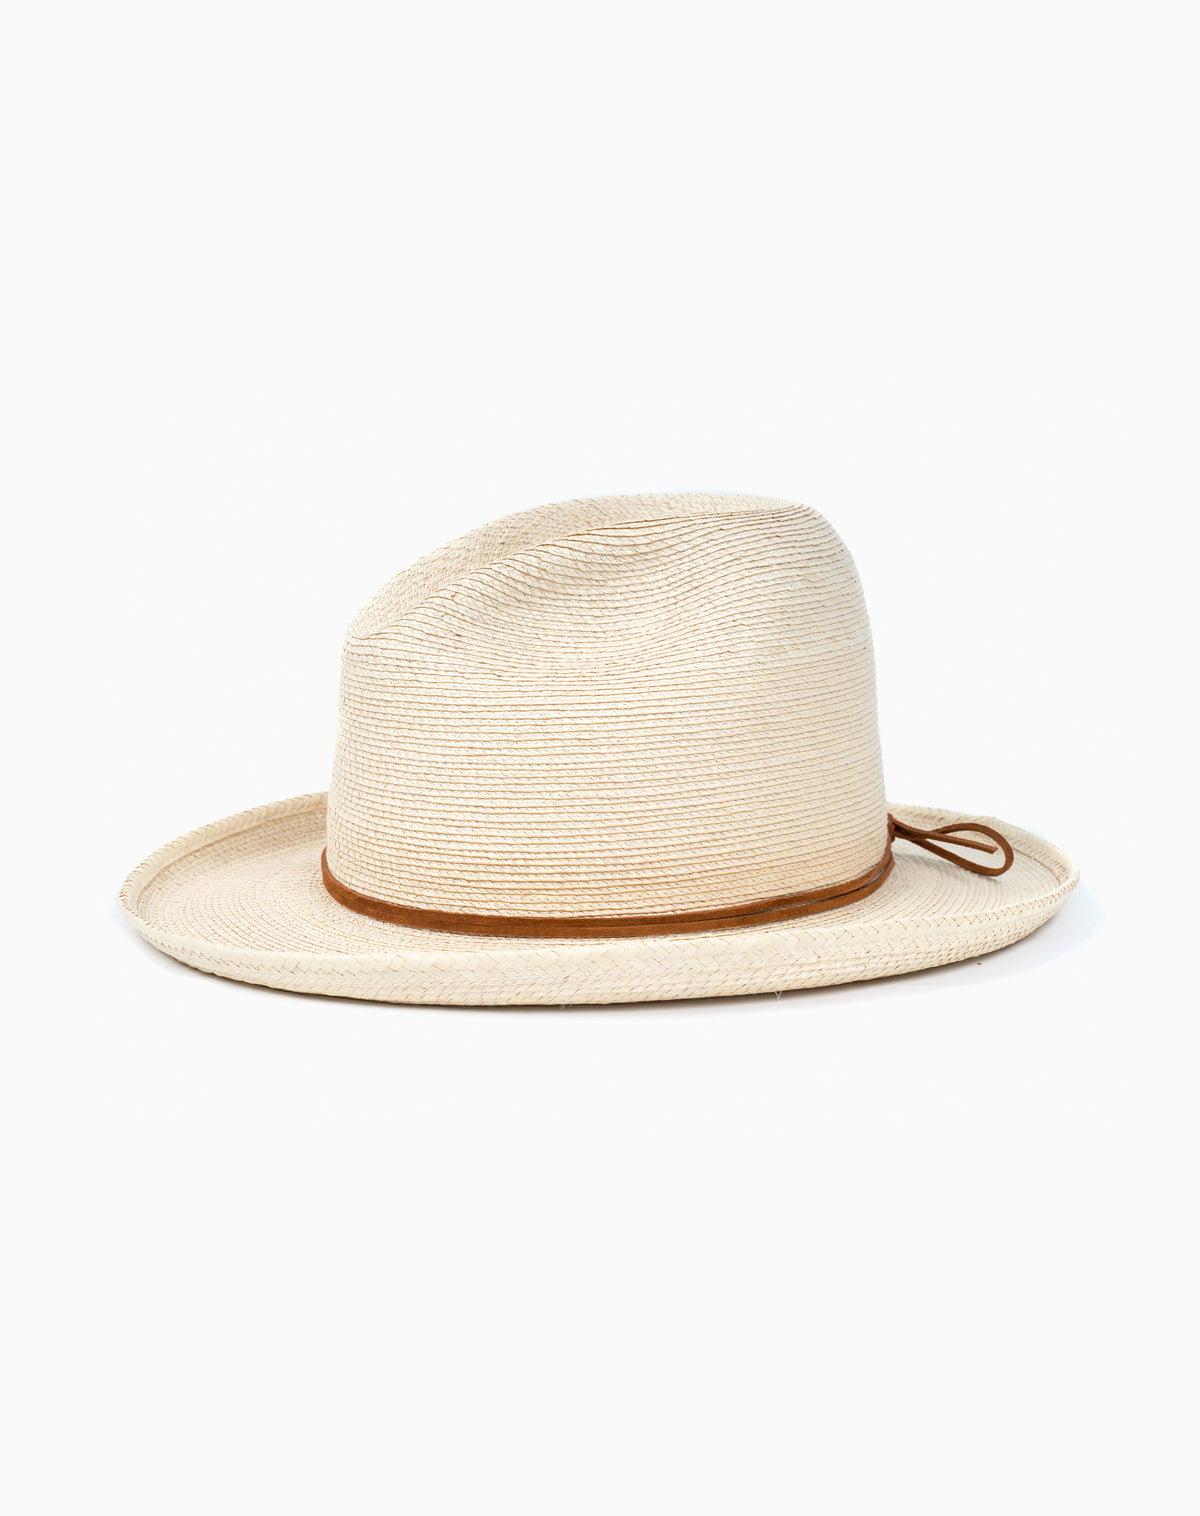 The Bluffton Straw Hat